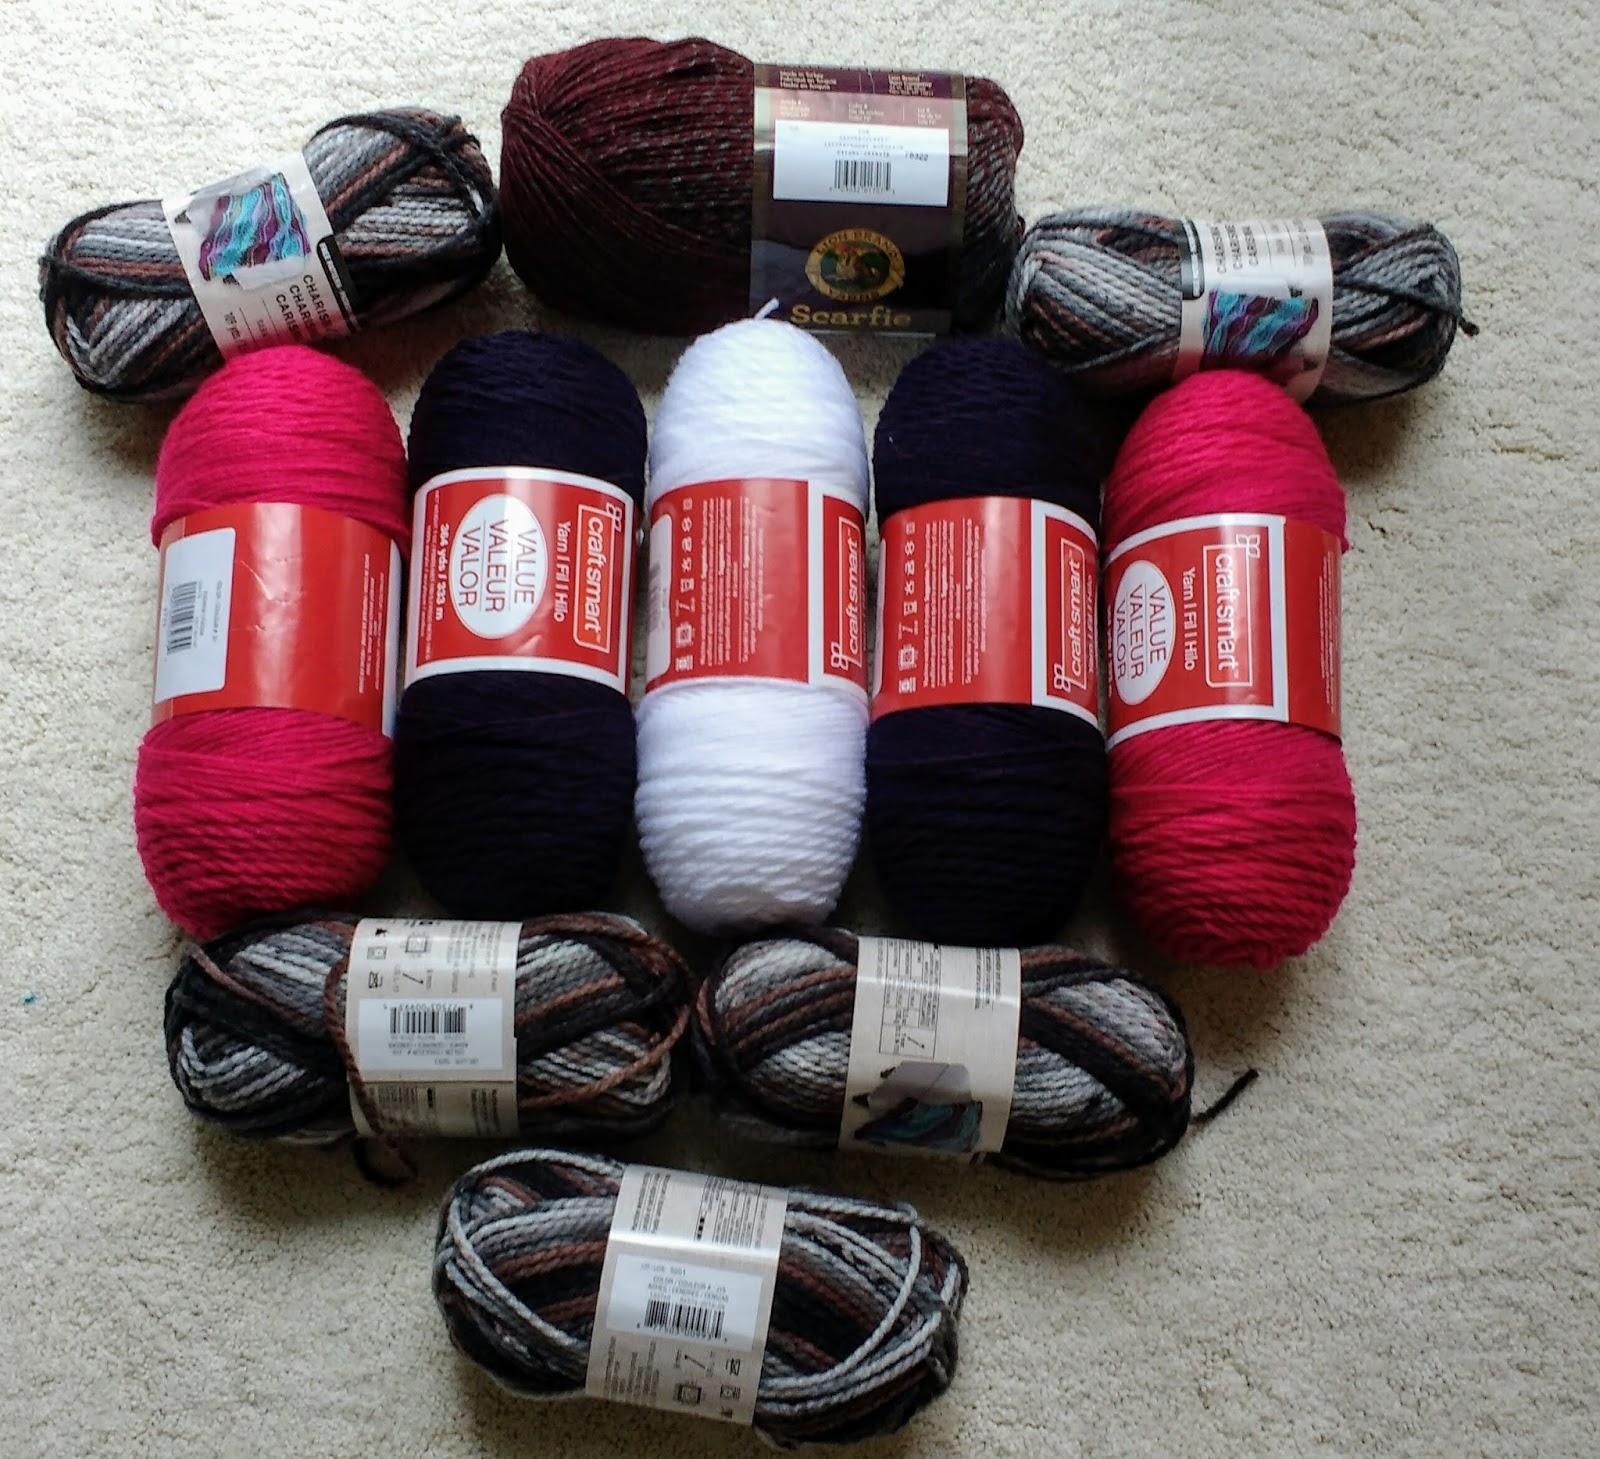 i visited michaels craft store a few days after christmas in 2017 during my visit to michaels i stocked up on eleven skeins of yarn that were on sale - Michaels After Christmas Sale